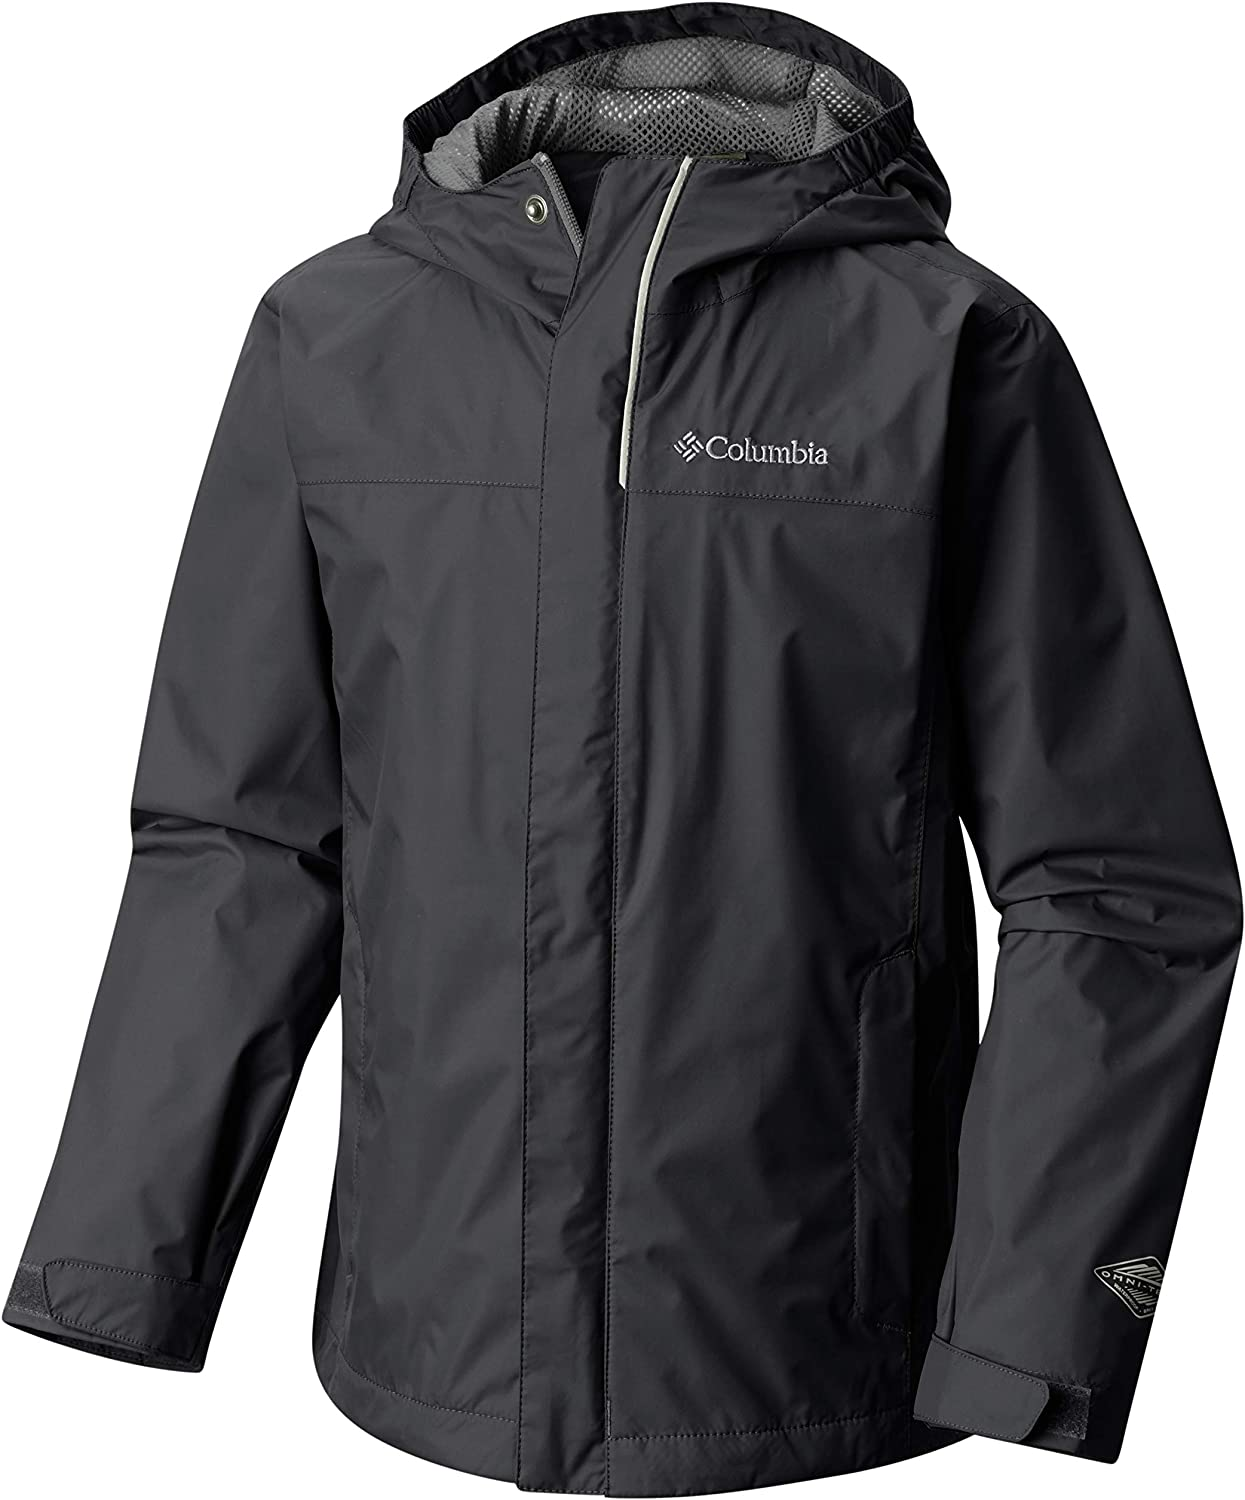 Columbia boys Breathable Watertight Jacket: Clothing